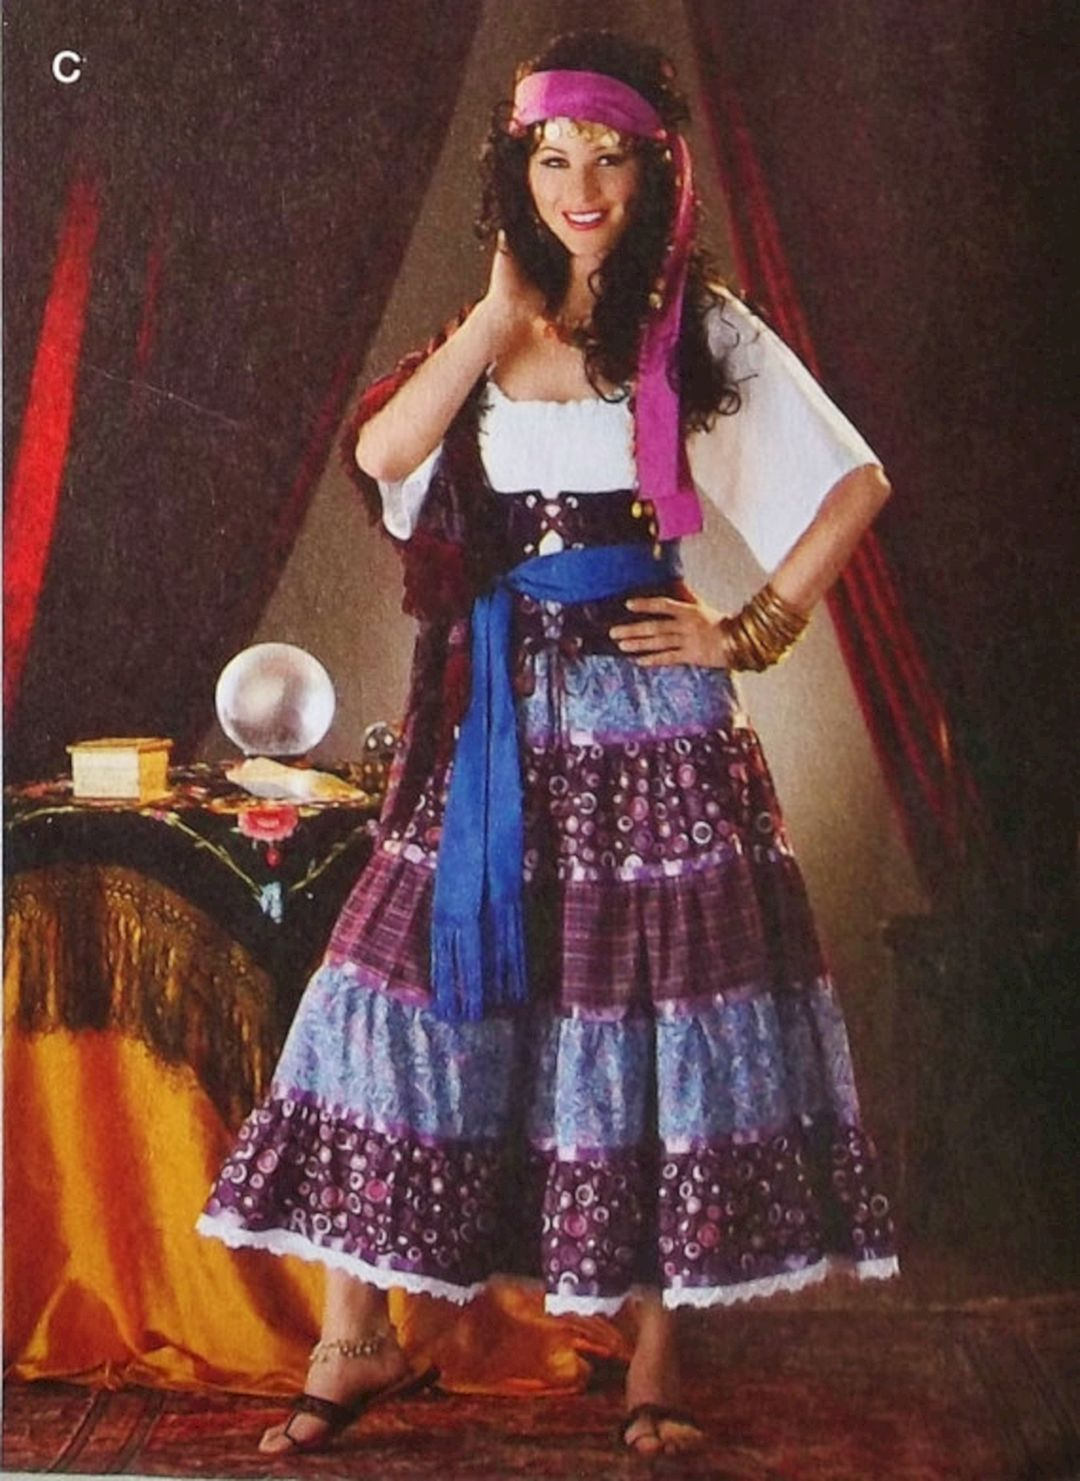 65 Awesome Fortune Teller Costume Ideas For Halloween 012